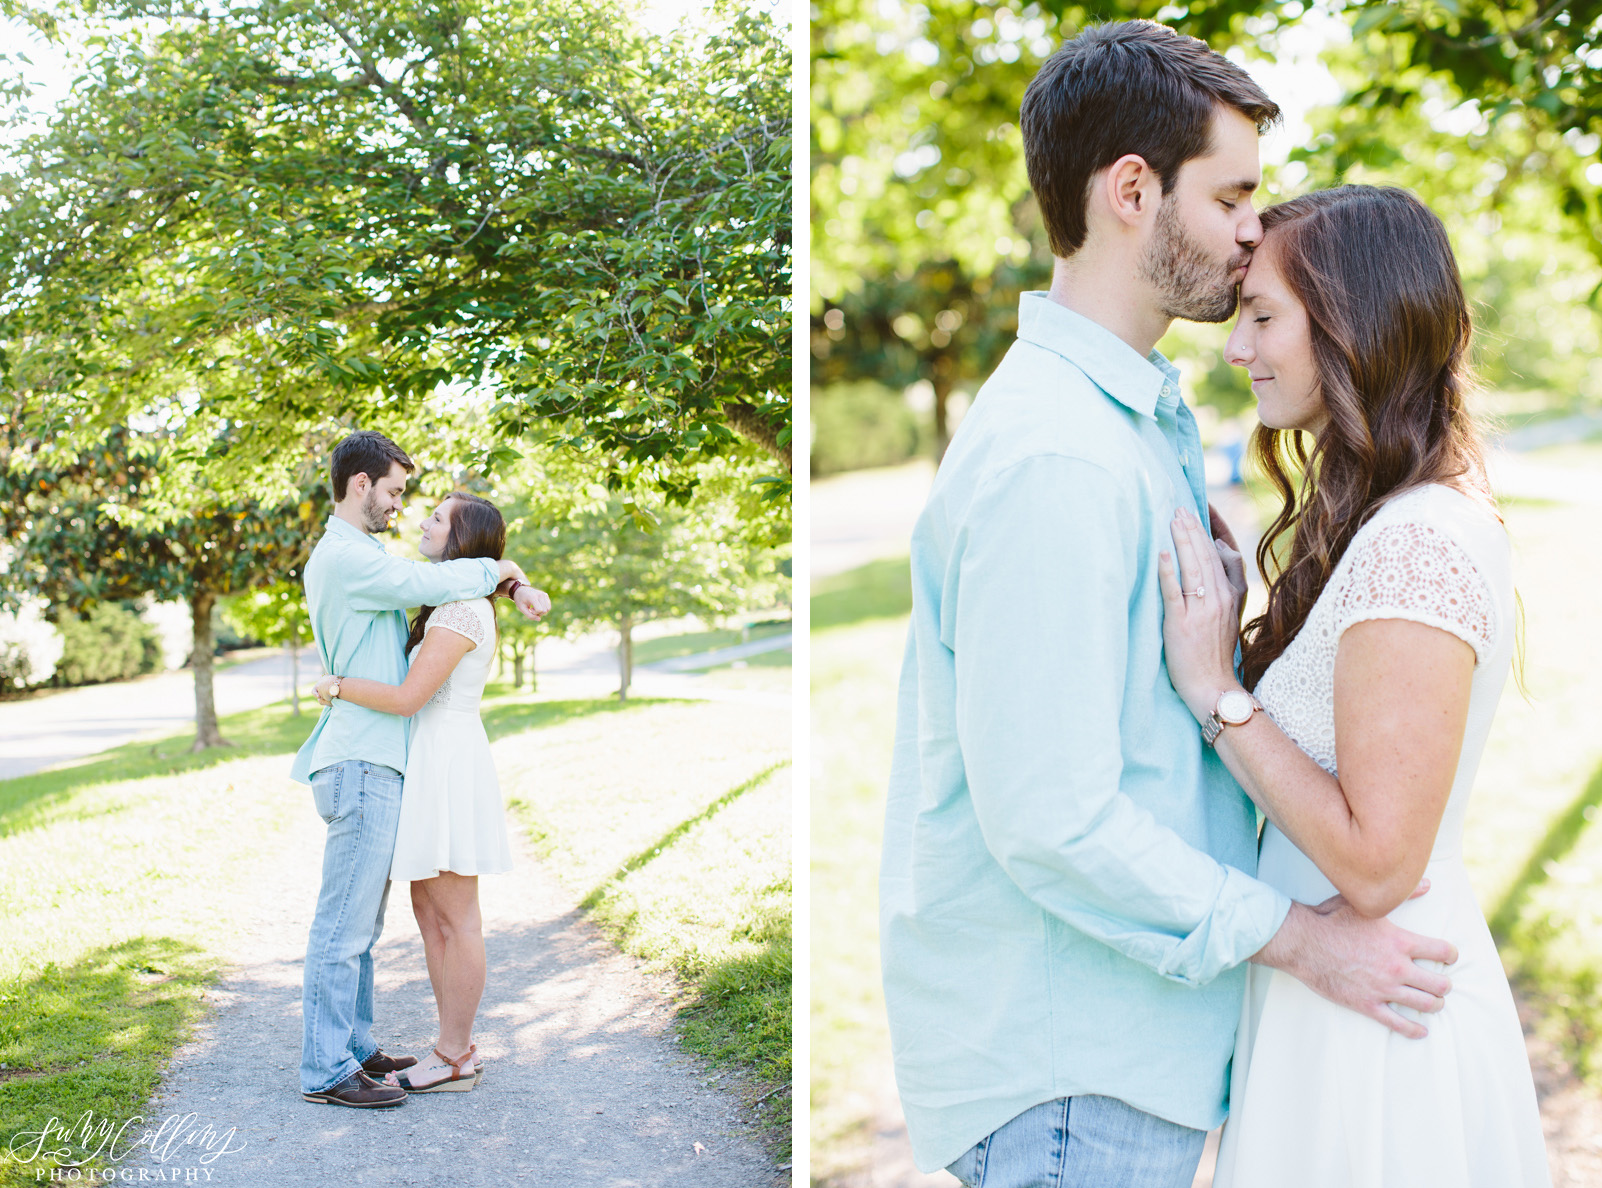 poses, couples, outdoor, Sequoyah hills, Knoxville, Tennessee, engagement, sunset, evening, love, vibrant, colorful, bright, creative, romantic, natural, light and airy, natural light, passion, inspiration, intimate